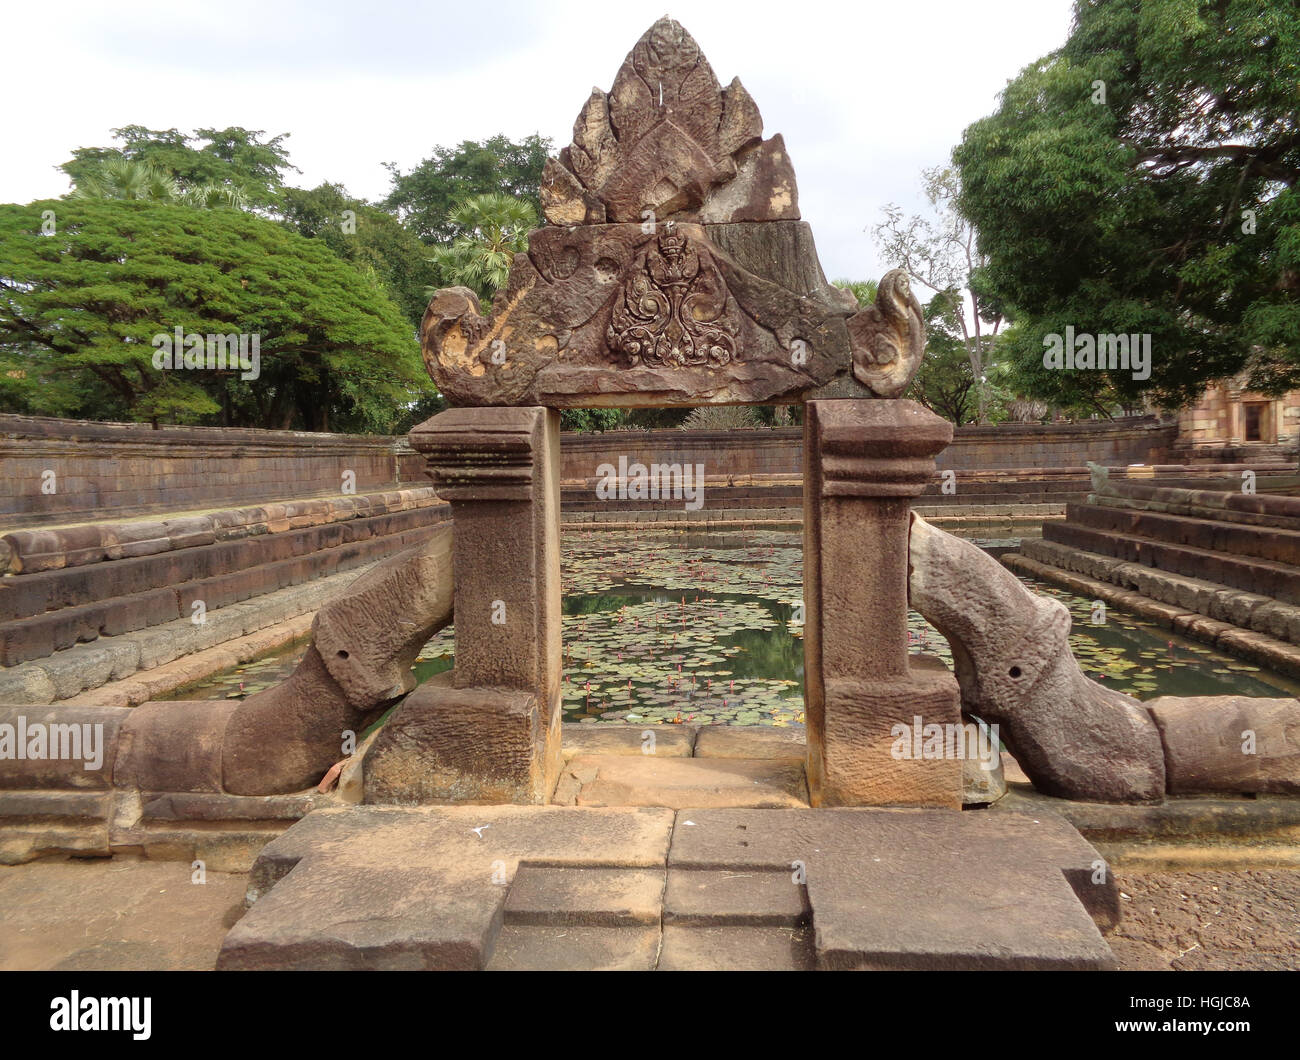 Impressive Ancient Arch of the Lotus Pond at Prasat Hin Muang Tam Temple, Buriram Province in Thailand - Stock Image